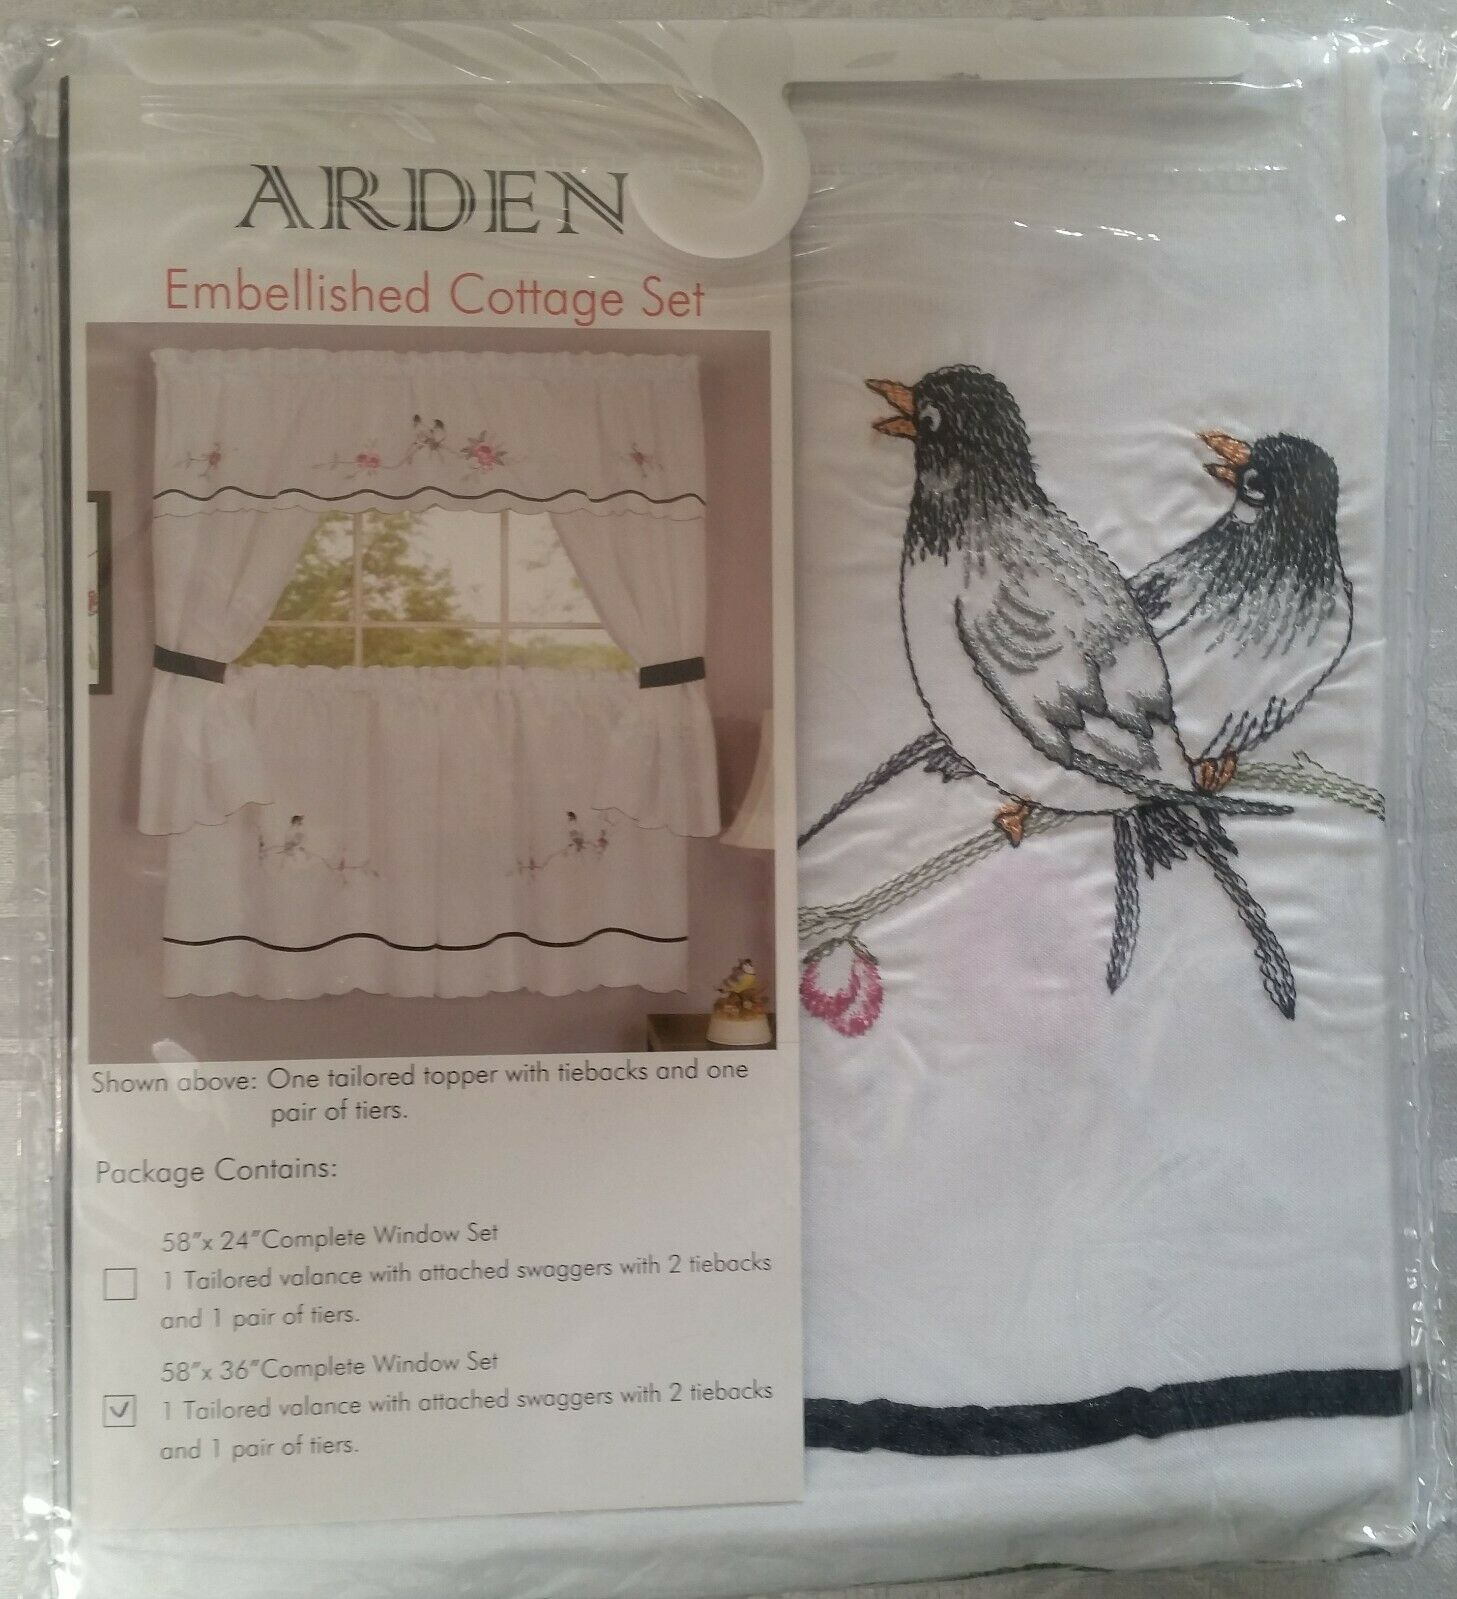 "Primary image for 3 pc. Embellished Curtains Set: 2 Tiers & Valance (58""x36"") BIRDS, ARDEN, Achim"